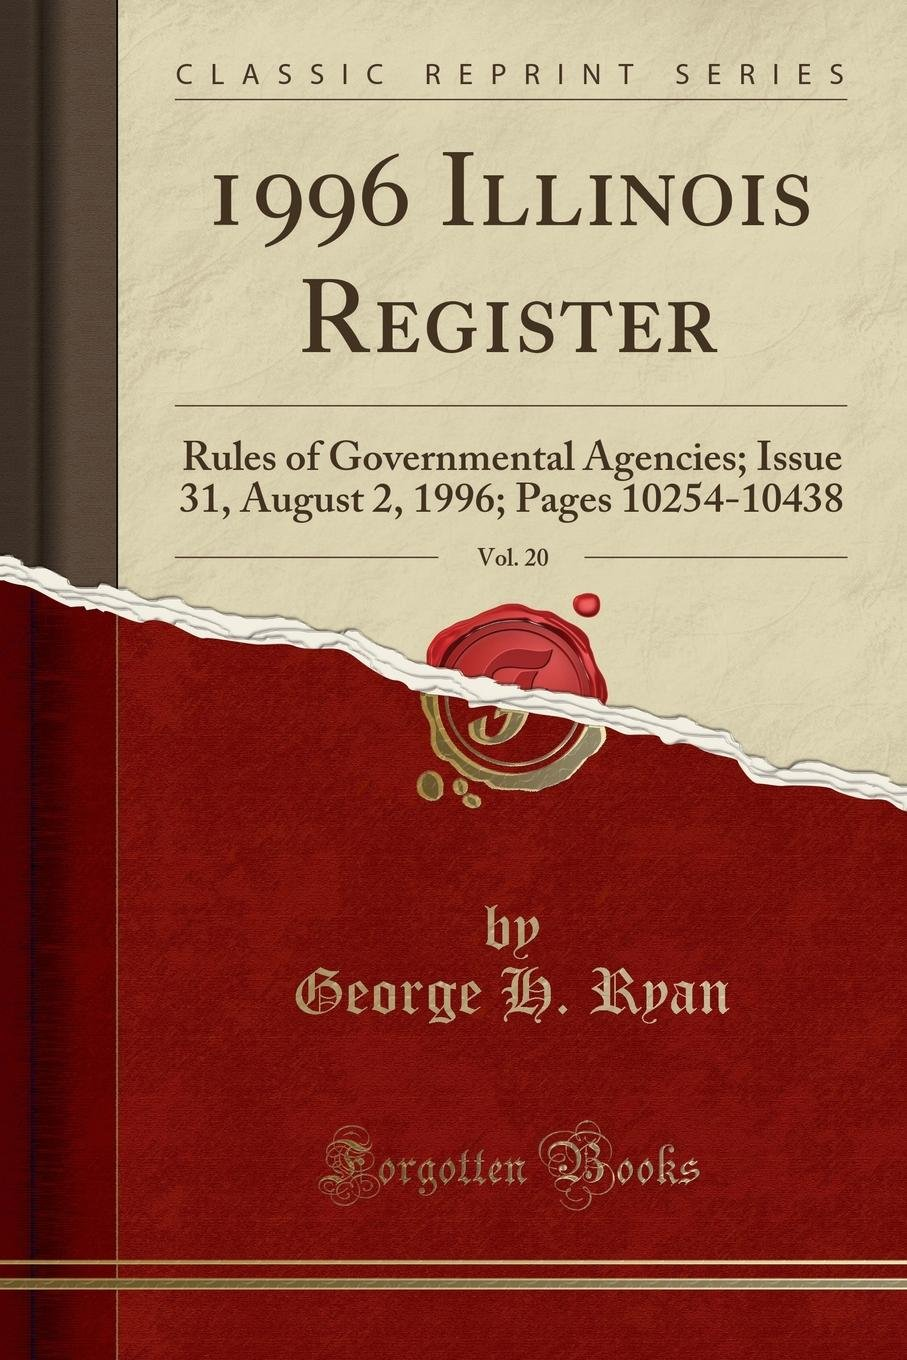 Download 1996 Illinois Register, Vol. 20: Rules of Governmental Agencies; Issue 31, August 2, 1996; Pages 10254-10438 (Classic Reprint) pdf